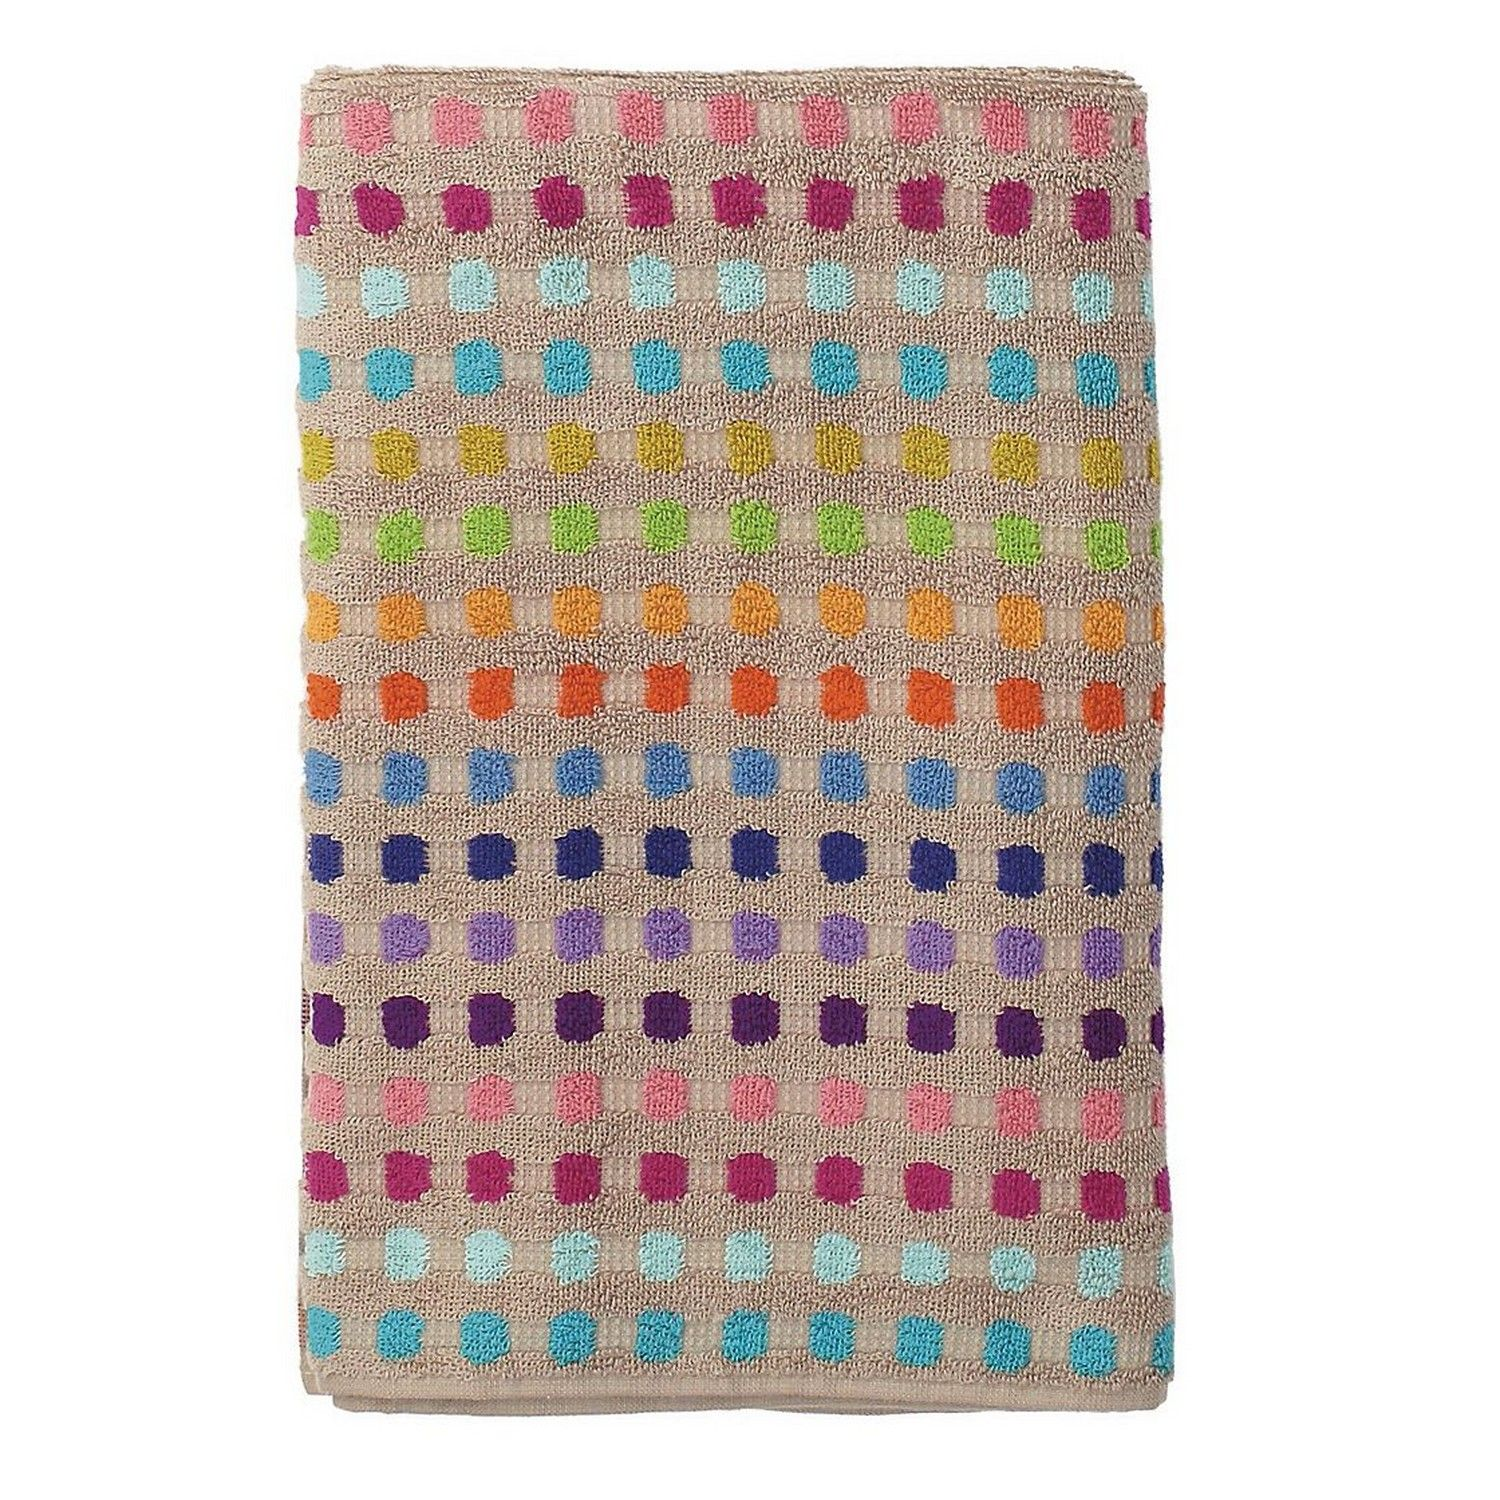 Vibrantly Colored Bath Towel Loomed In Portugal Of Soft Absorbent